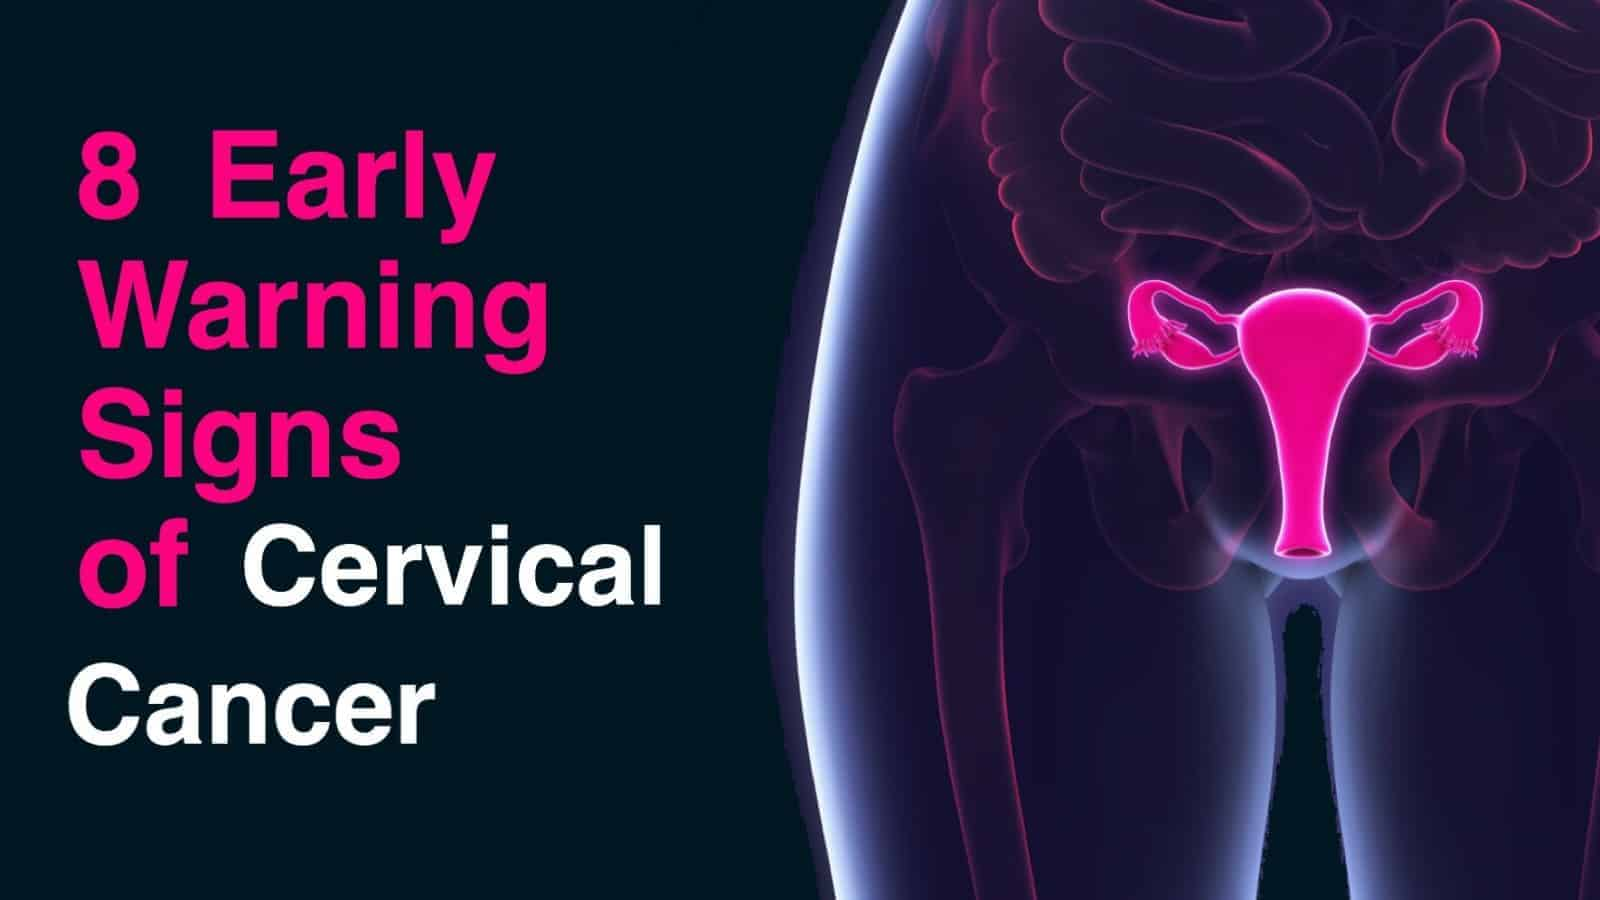 8 Early Warning Signs Of Cervical Cancer